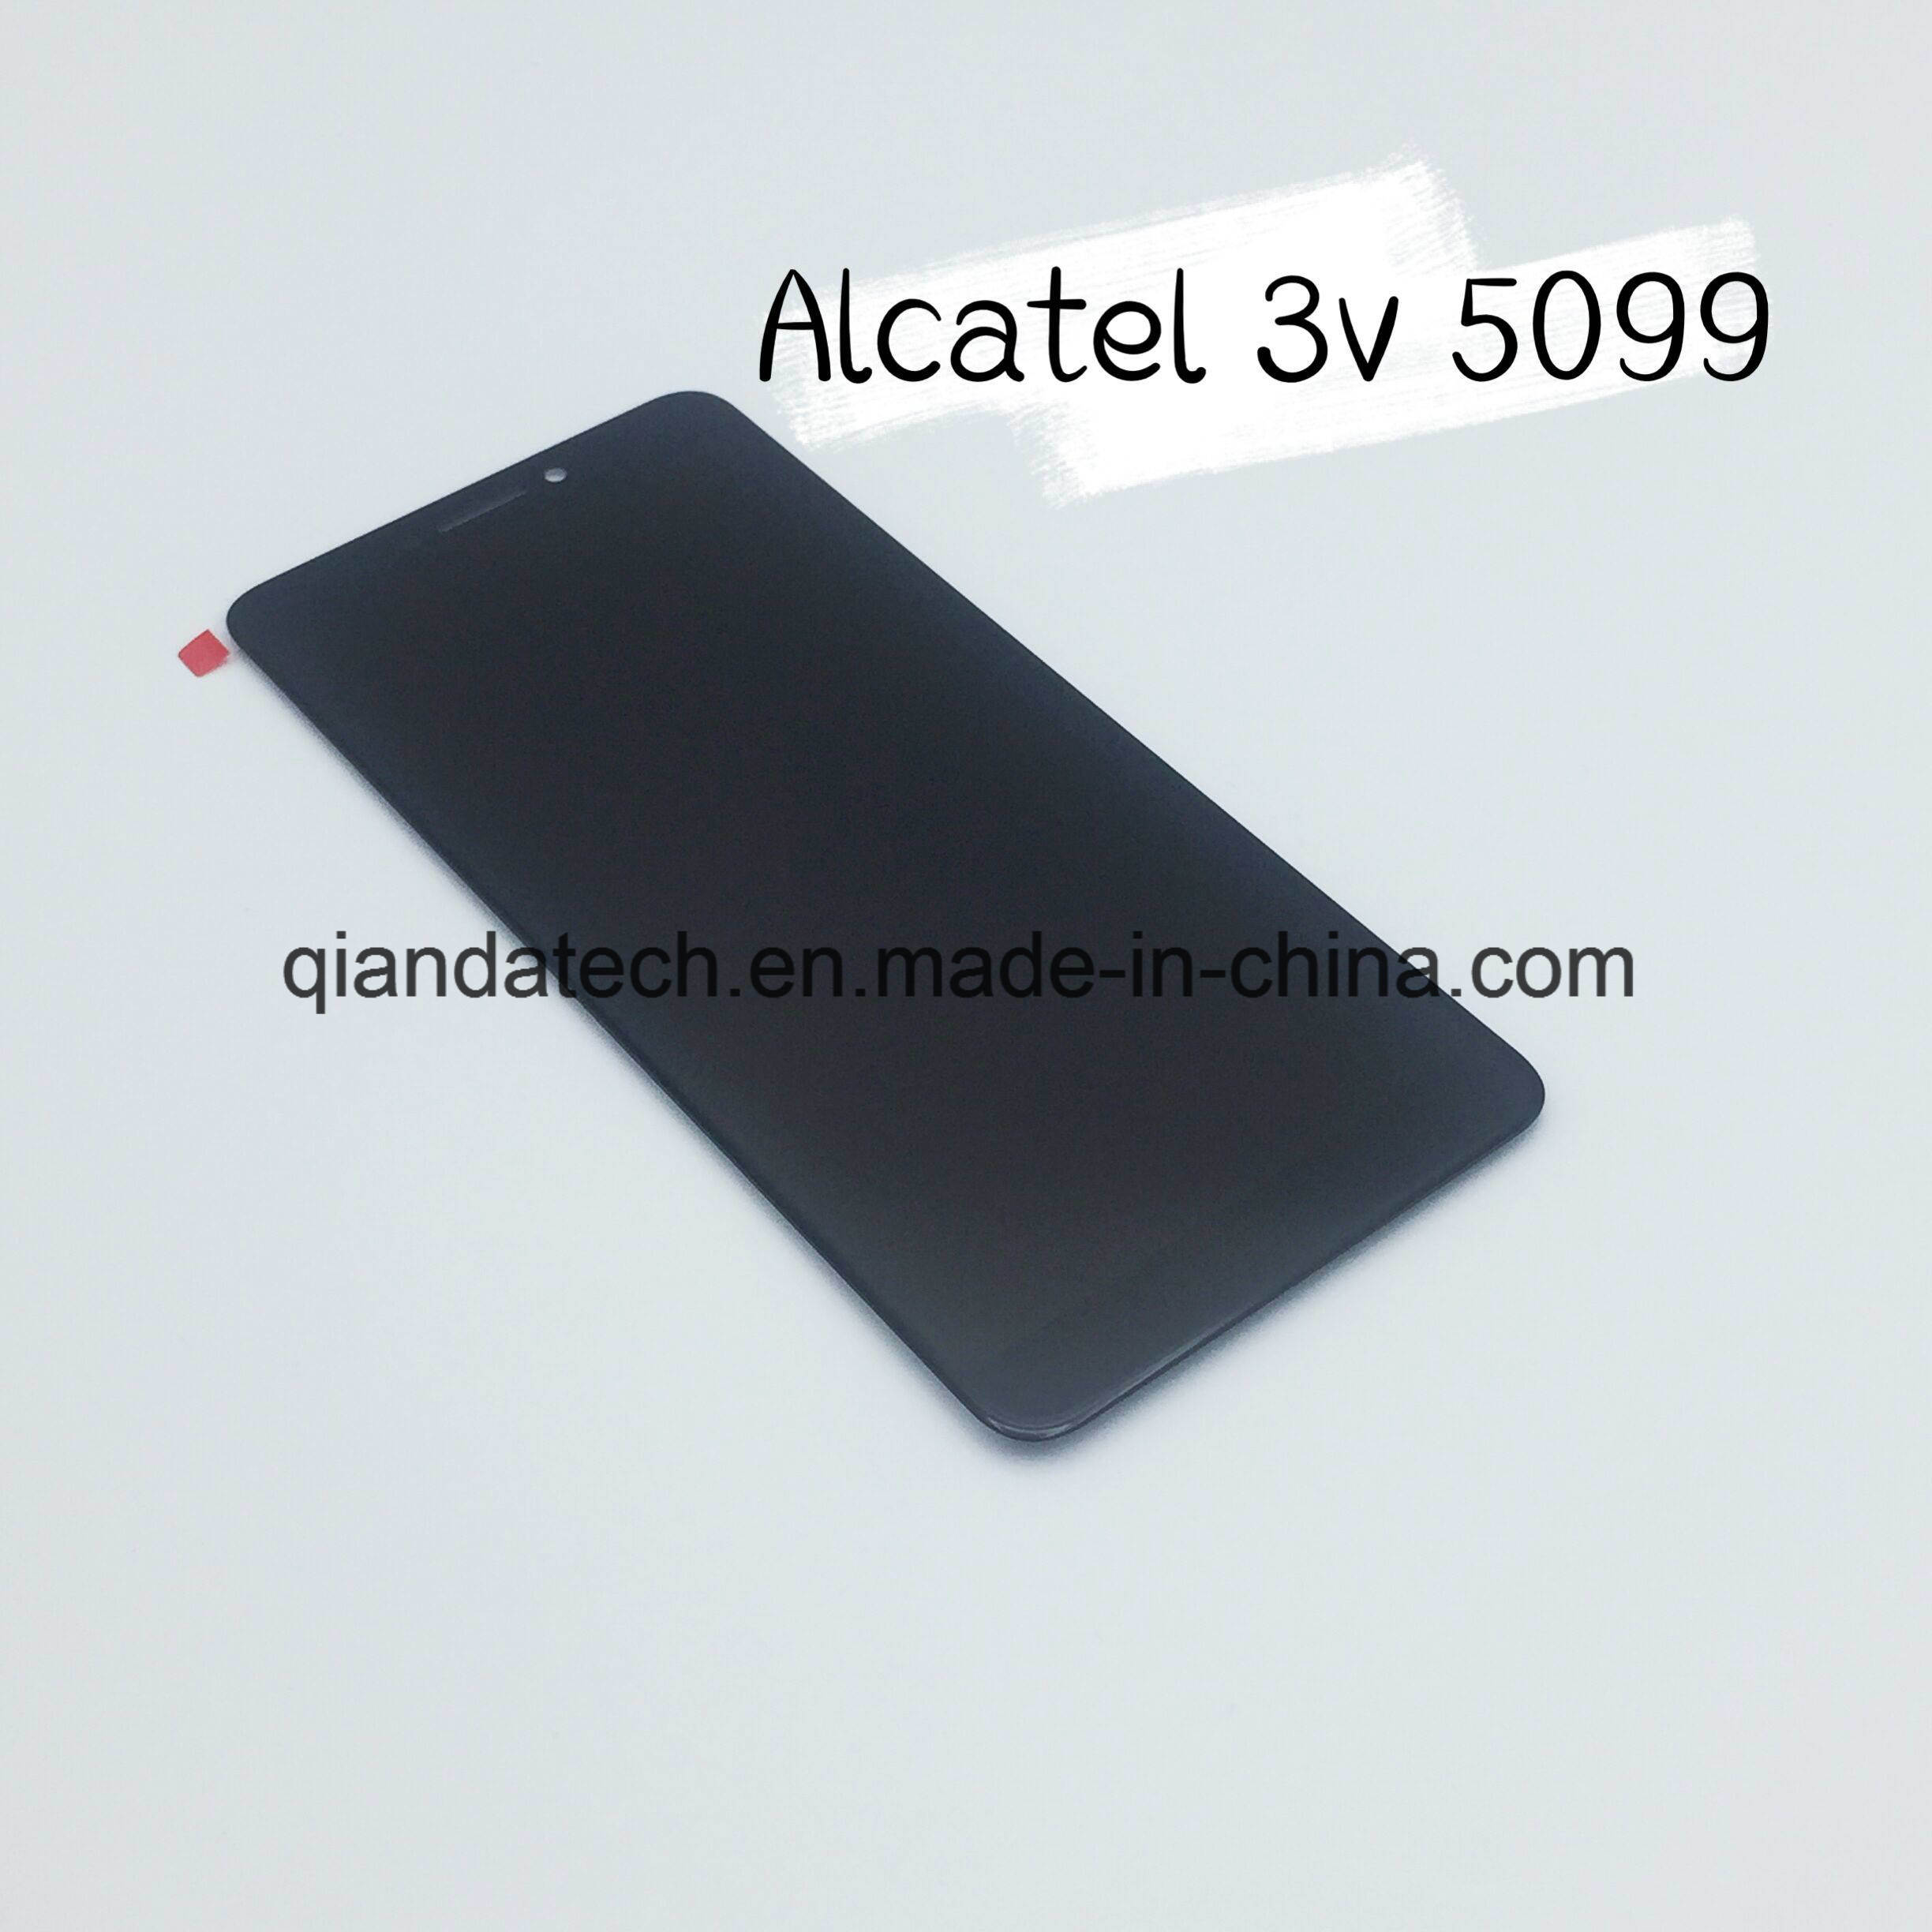 China Factory Price Good Quality Mobile Phone LCD Screen for